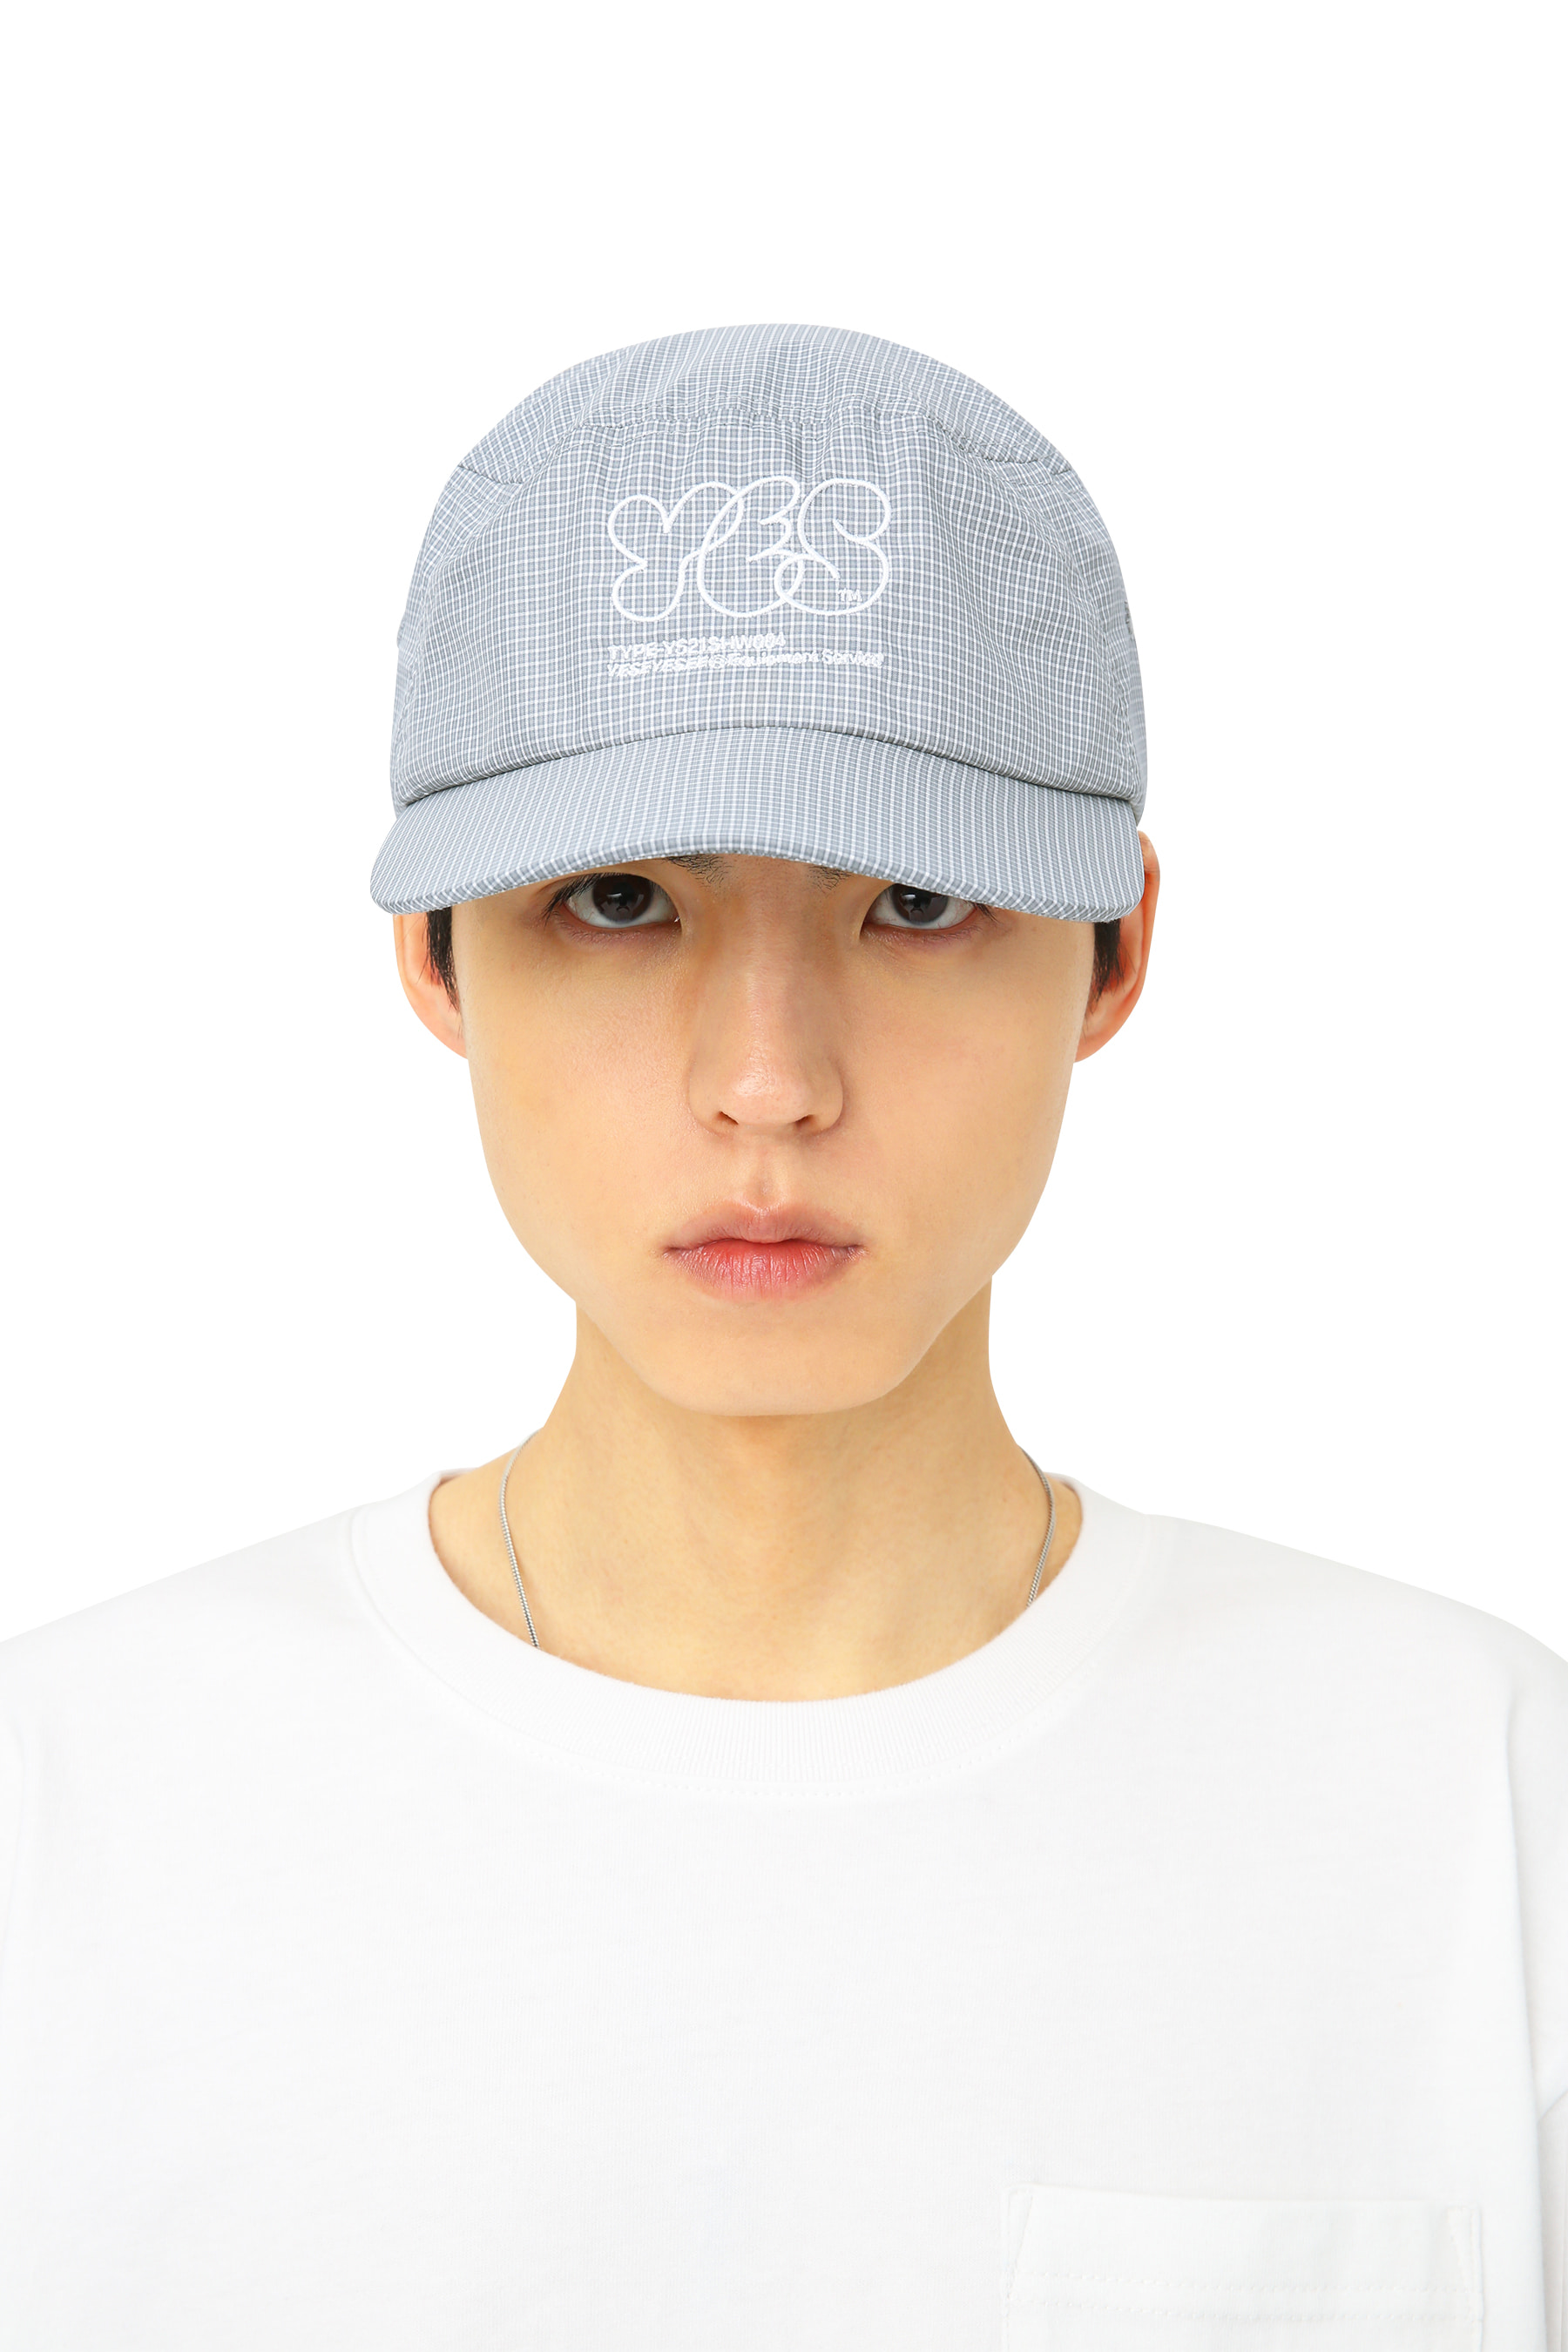 Y.E.S Fishing Cap Grey